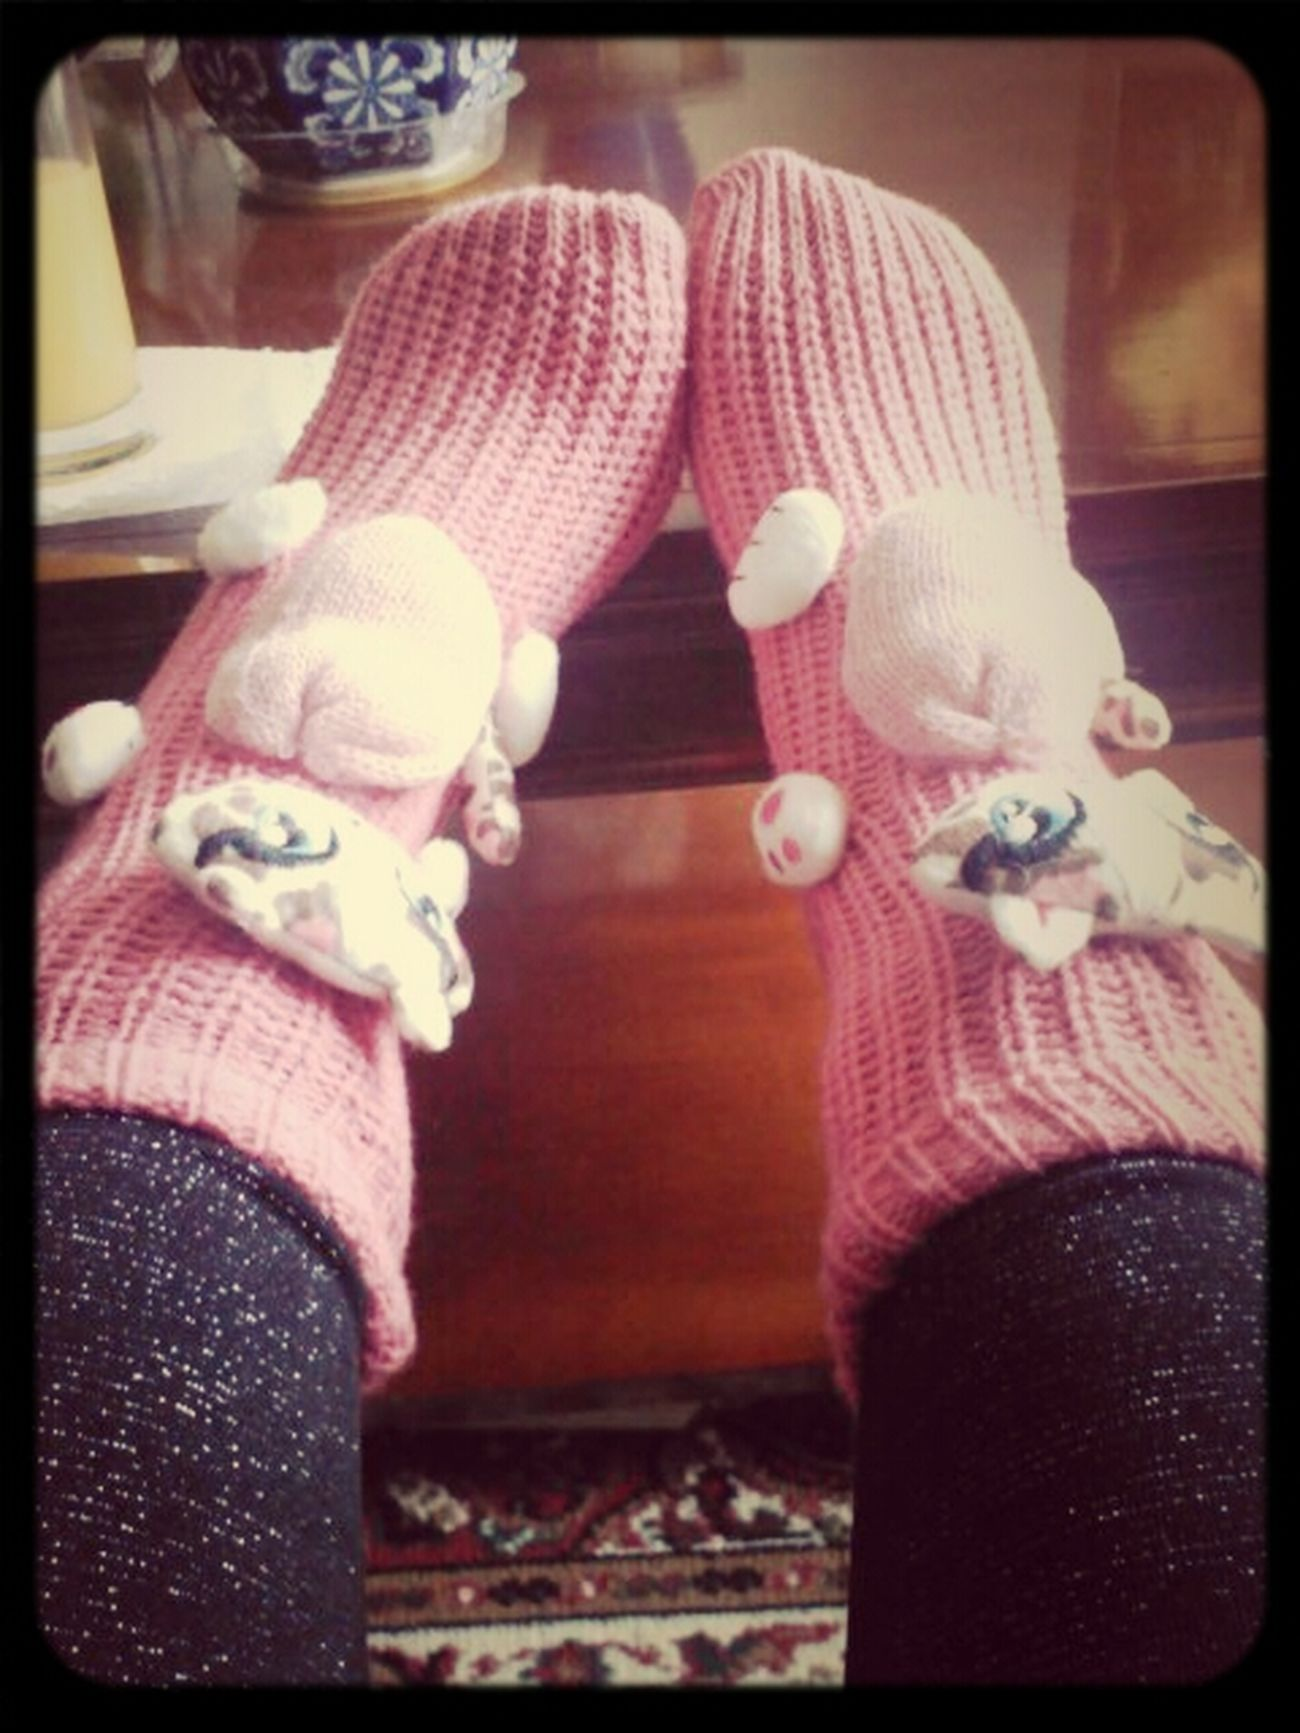 cozy socks.. #like #pink #kitty #kat